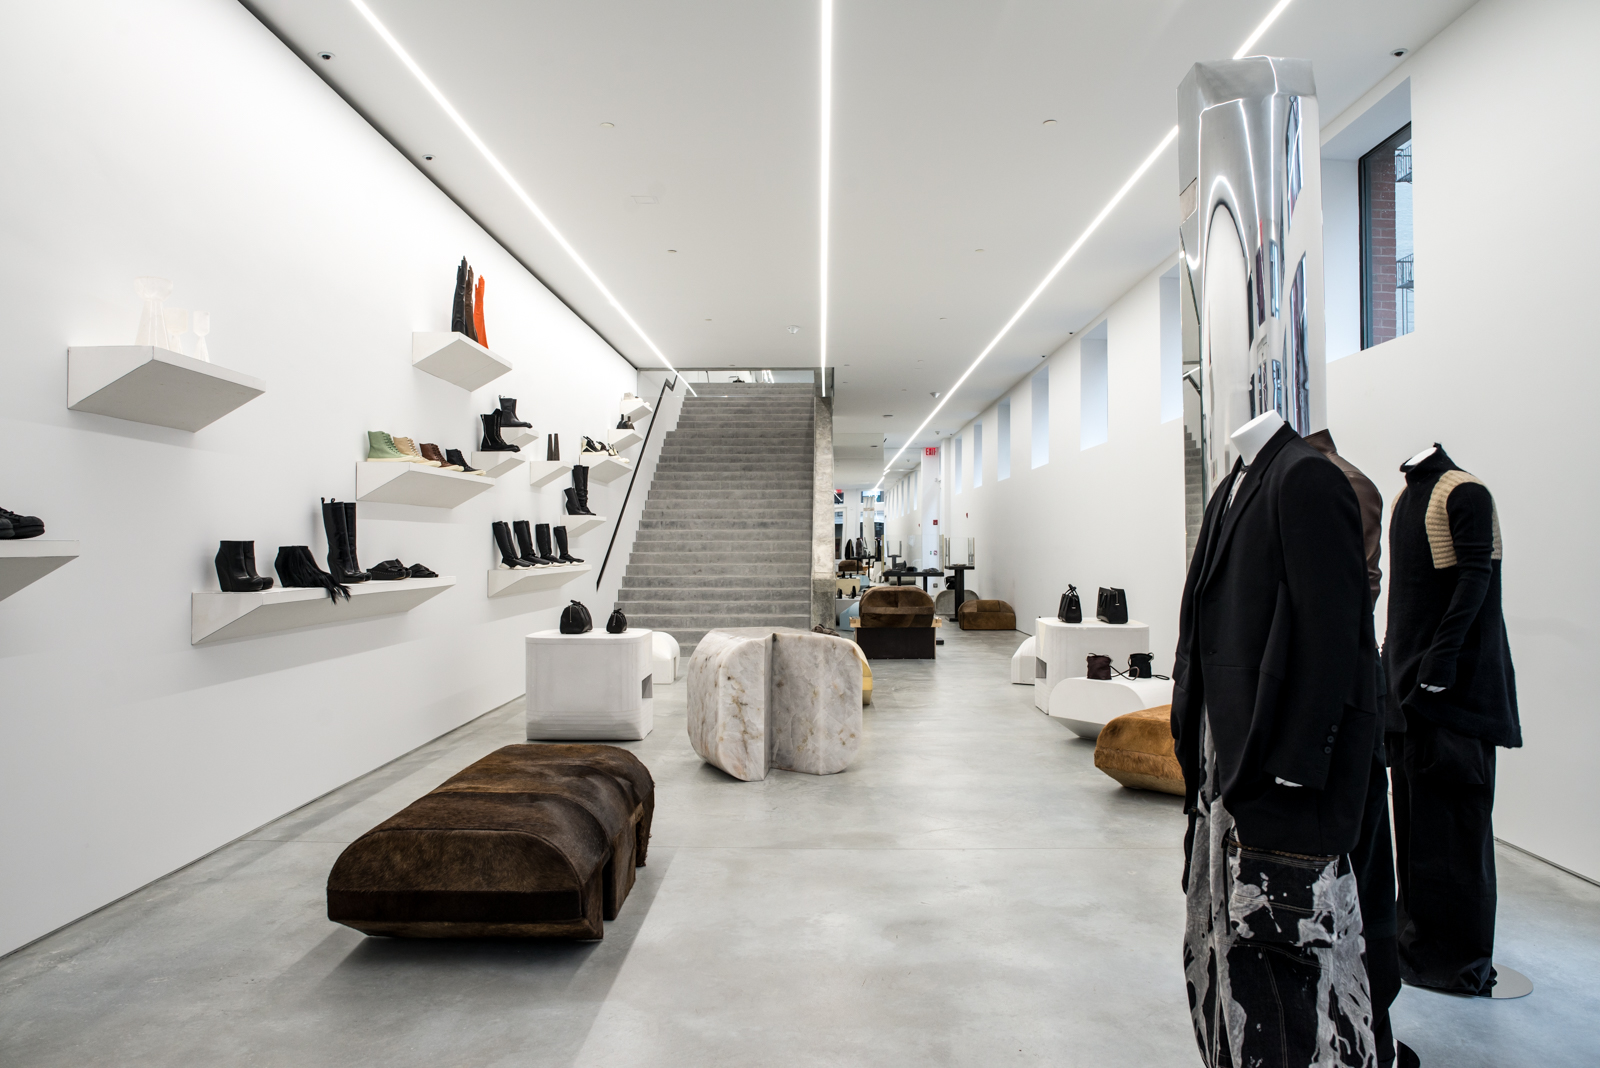 Your Look Inside the New Rick Owens Flagship Store in SoHo, NYC